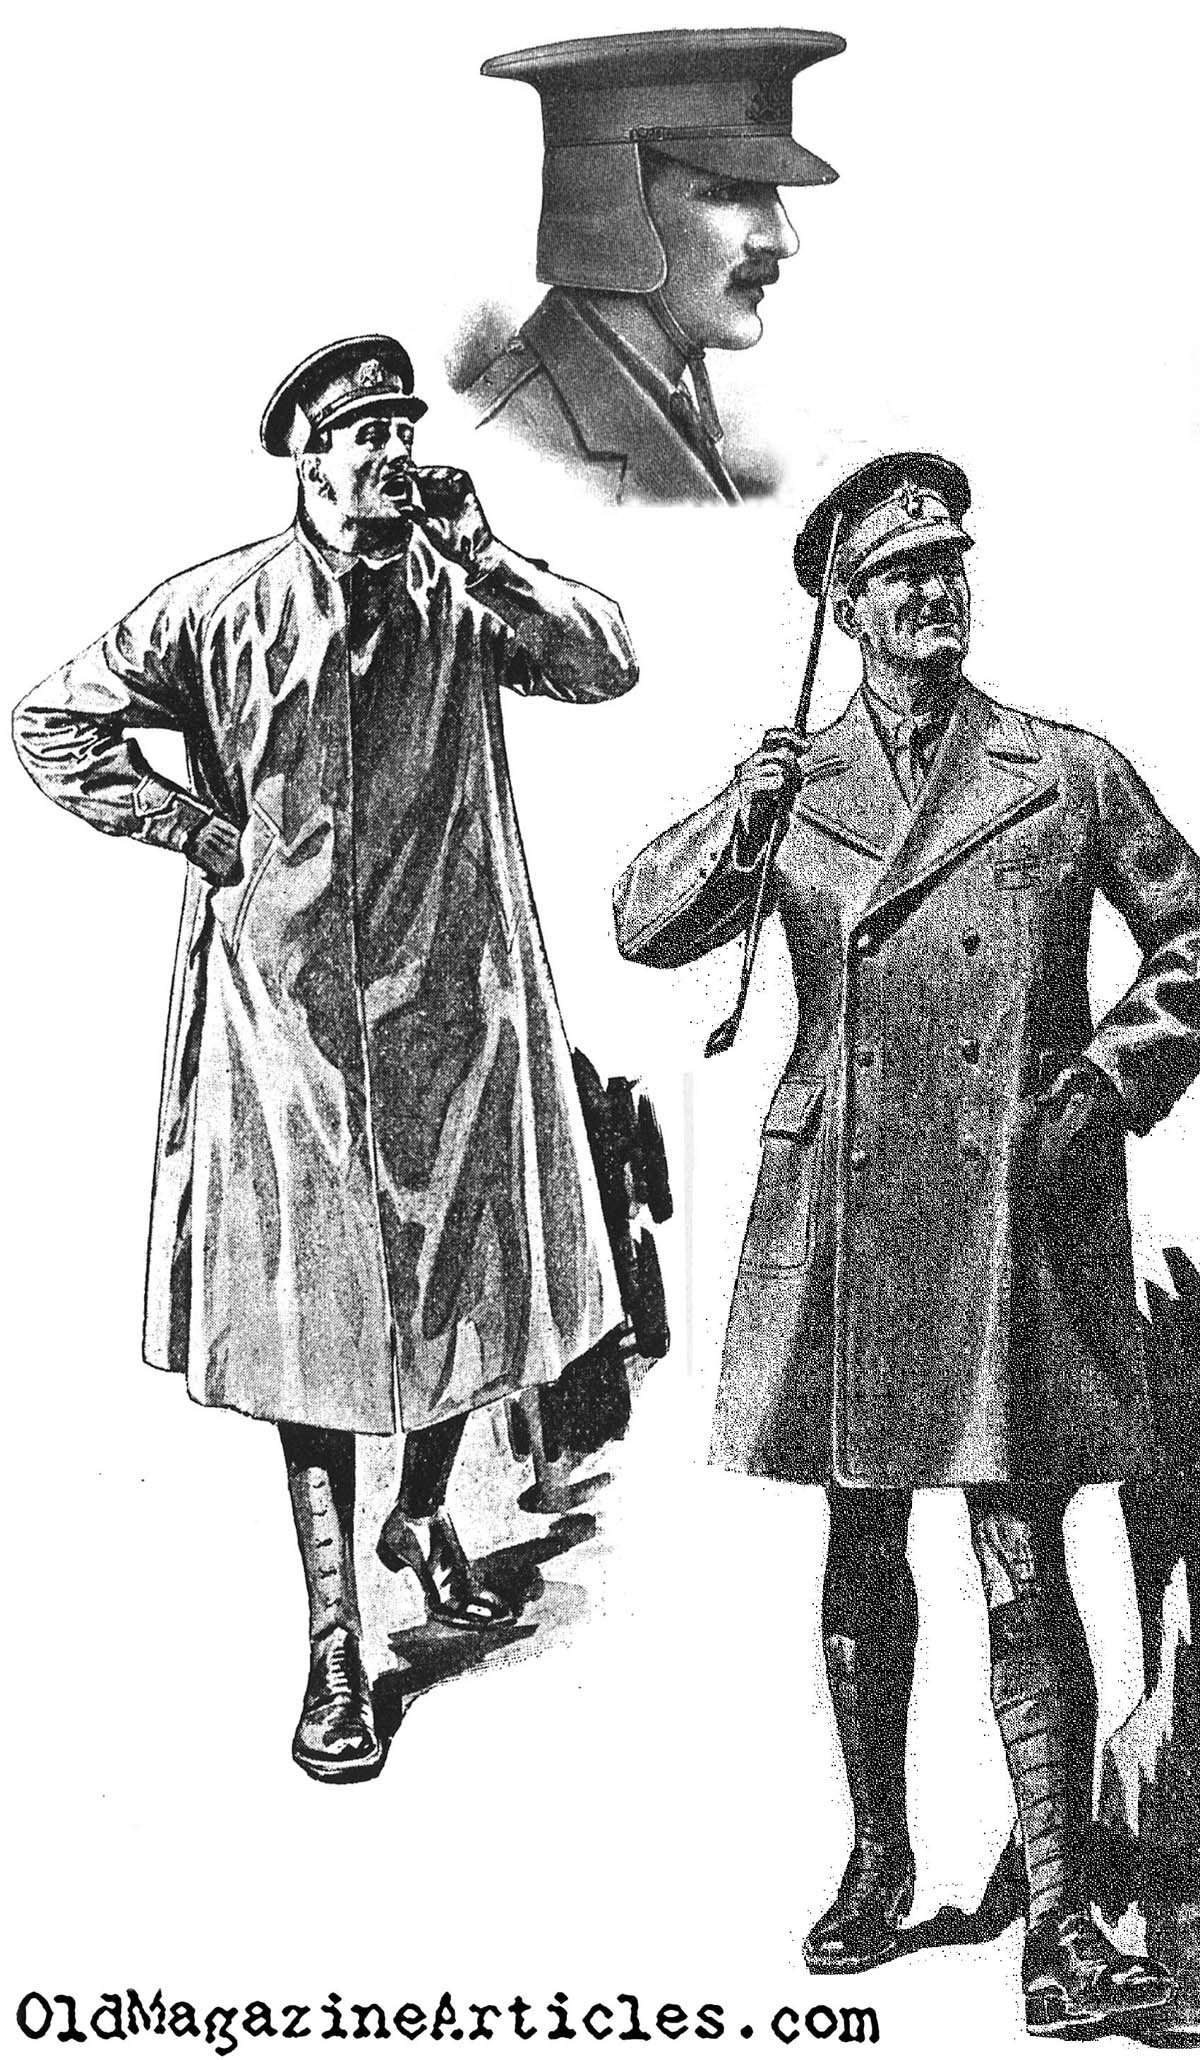 clip art of ww1 ww1 graphics graphic images of ww1 graphic images